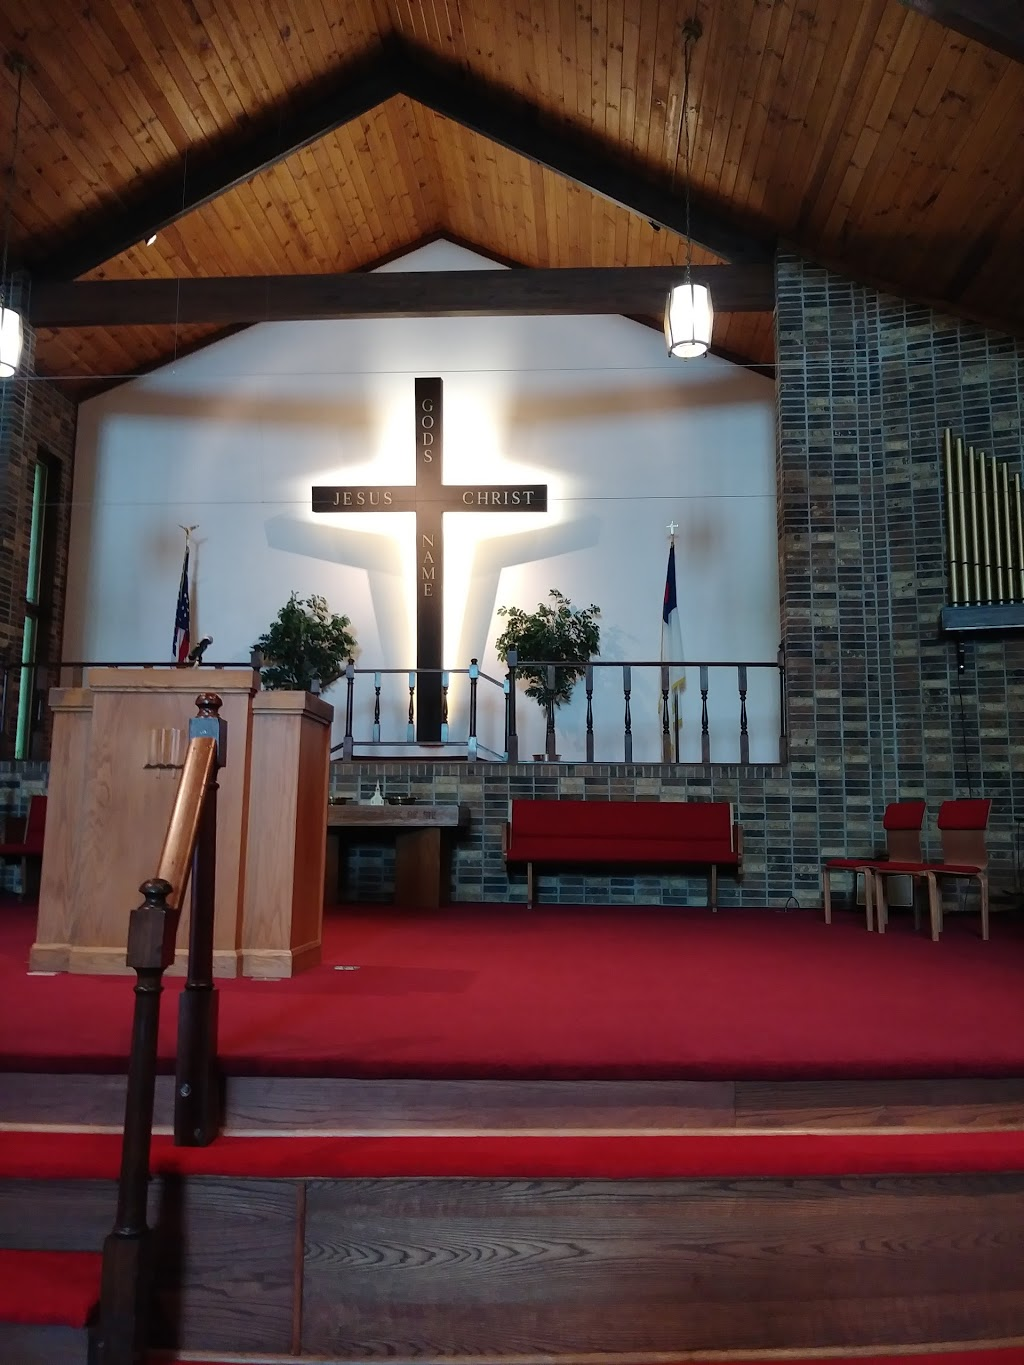 The Church of Jesus Christ - church  | Photo 1 of 2 | Address: 15676 Michigan Rd, Argos, IN 46501, USA | Phone: (574) 892-5556